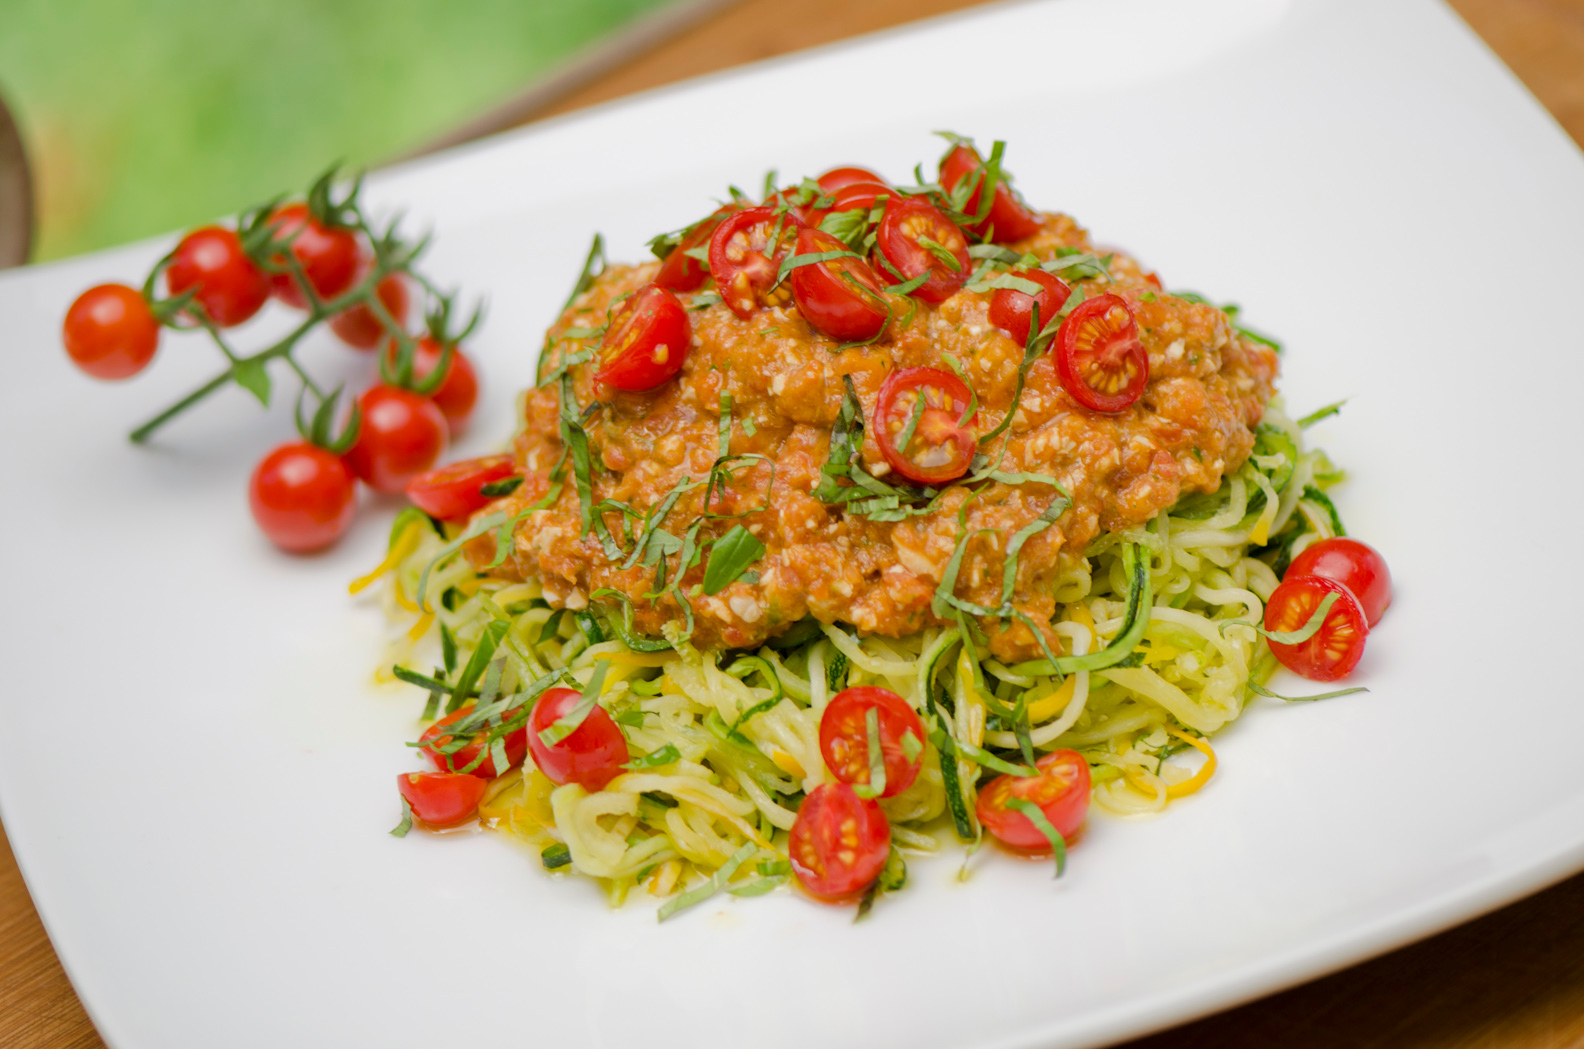 Raw Zucchini Pasta with Sun Dried Tomato Sauce